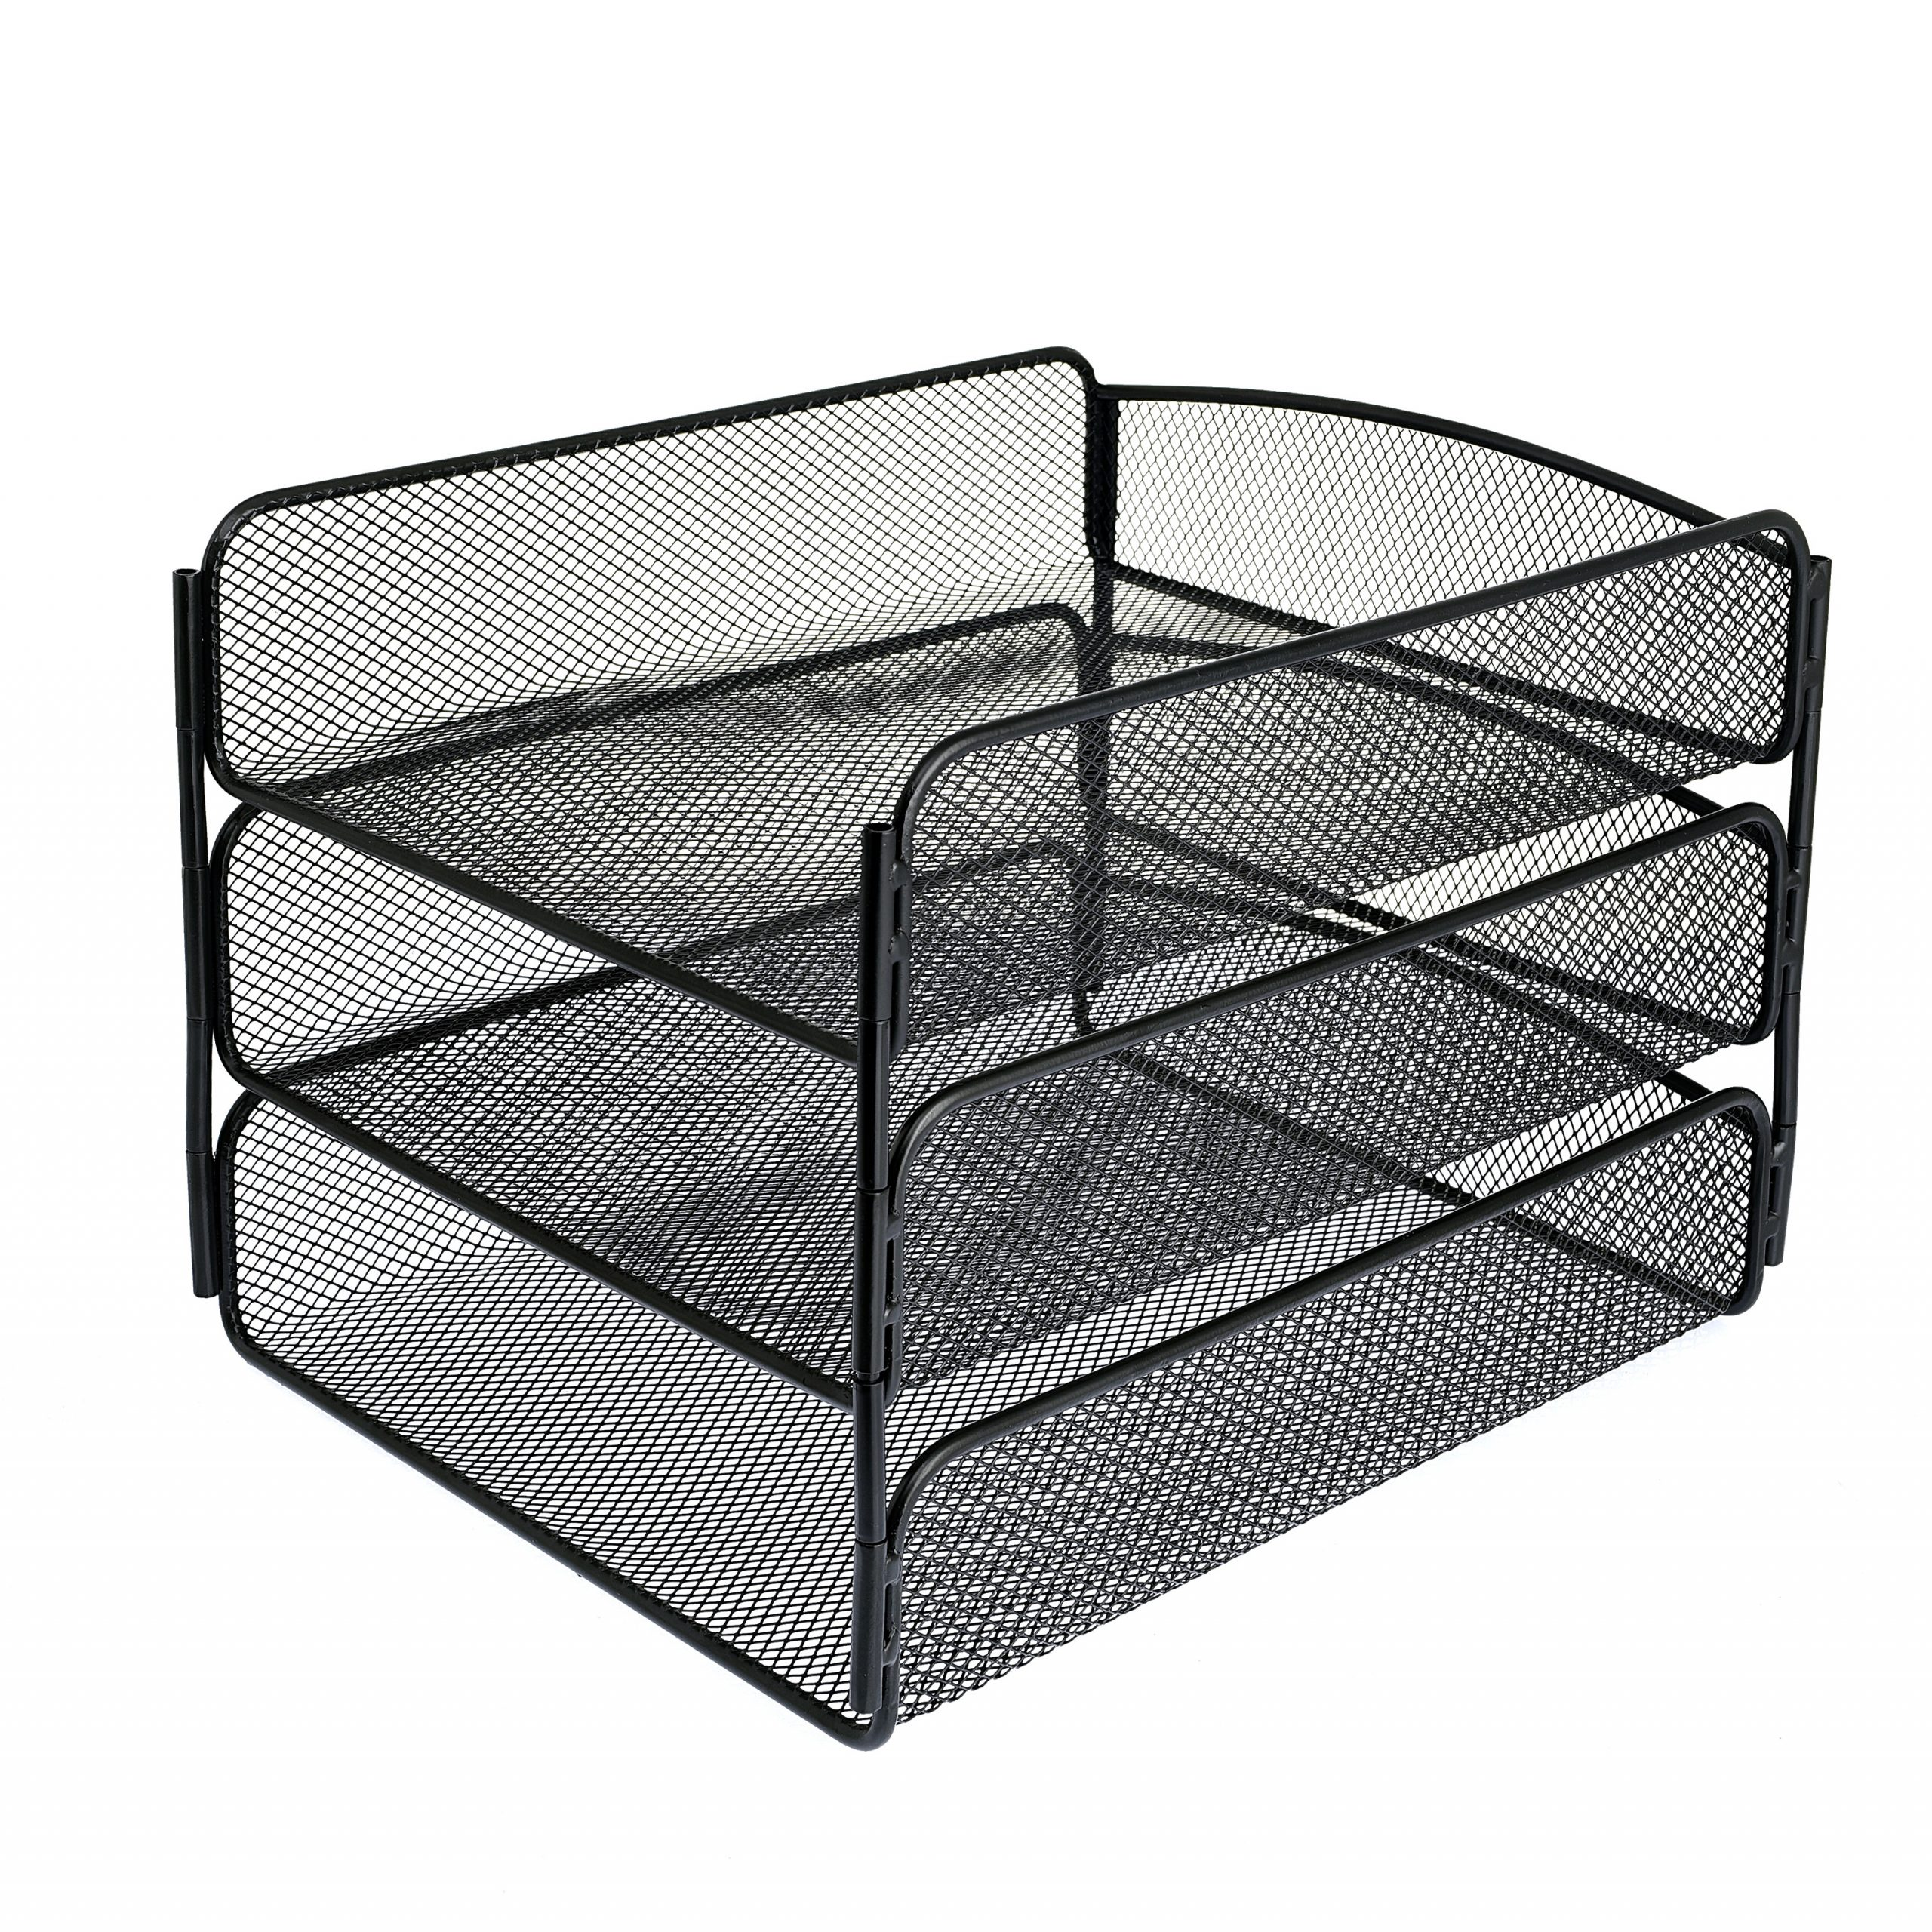 Mesh Desktop Organizer with Triple Tray